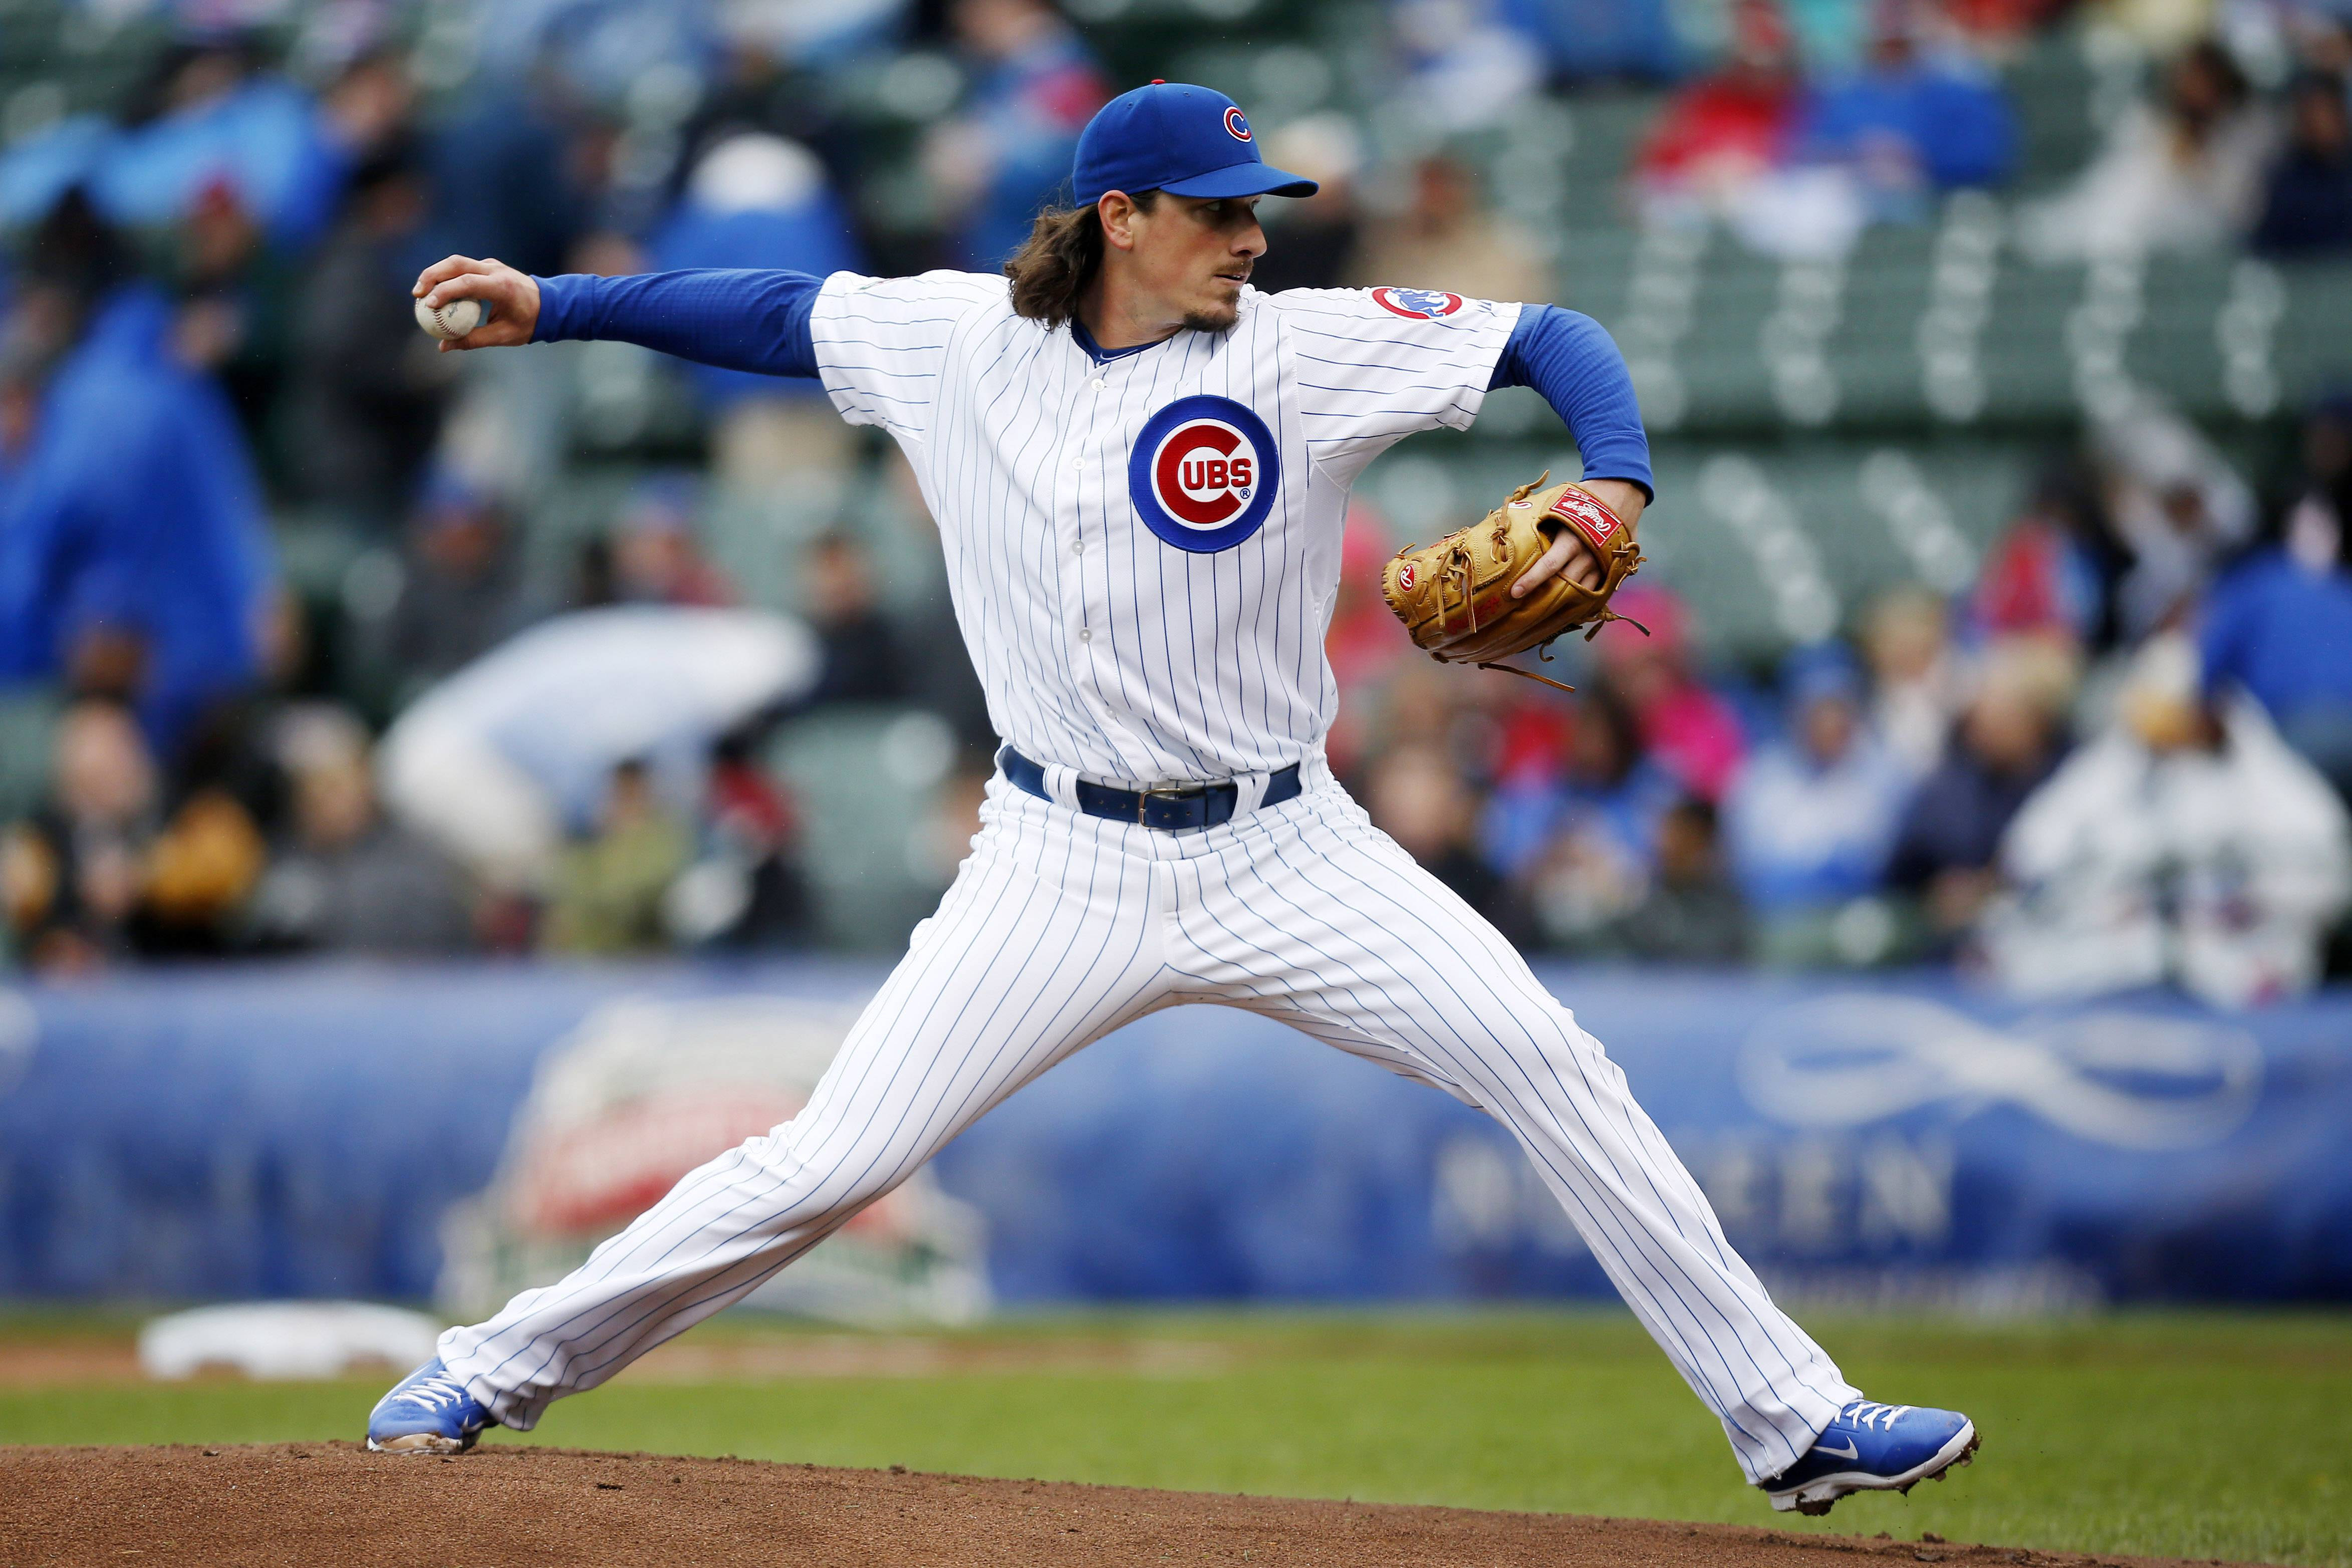 Chicago Cubs starting pitcher Jeff Samardzija delivers against the Milwaukee Brewers during the first inning of a baseball game on Friday, May 16, 2014, in Chicago. (AP Photo/Andrew A. Nelles)